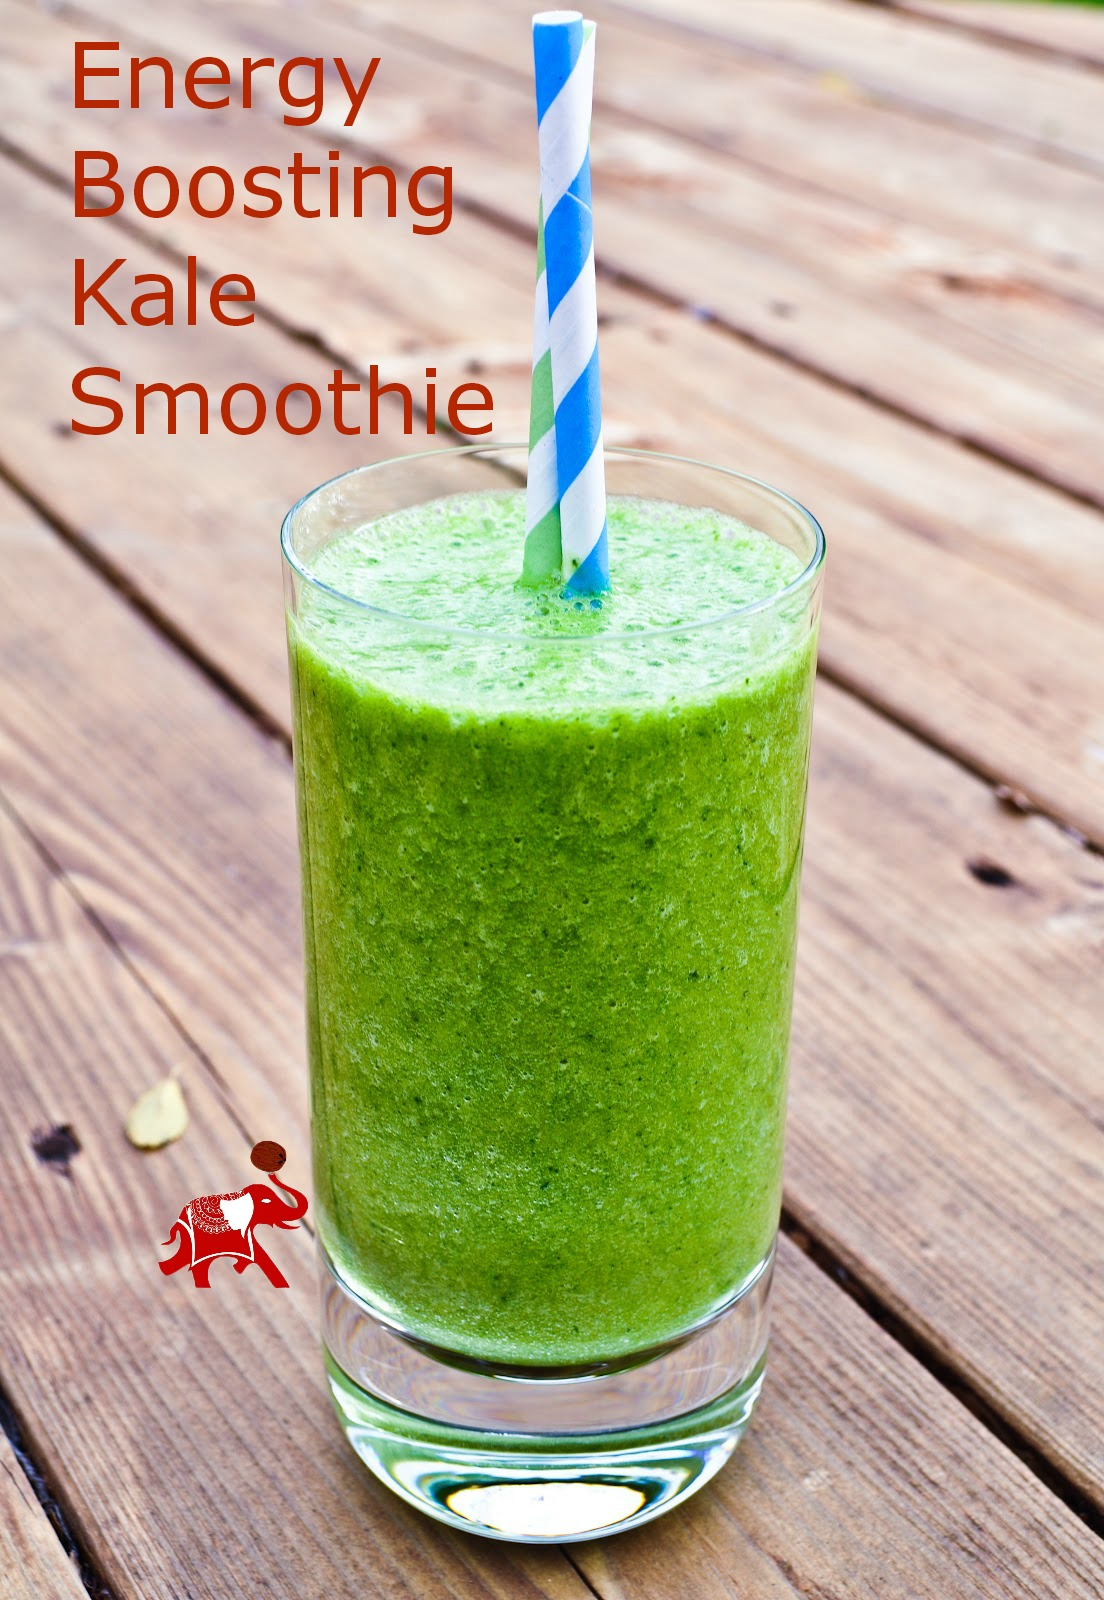 Energy-Boosting Kale Smoothie